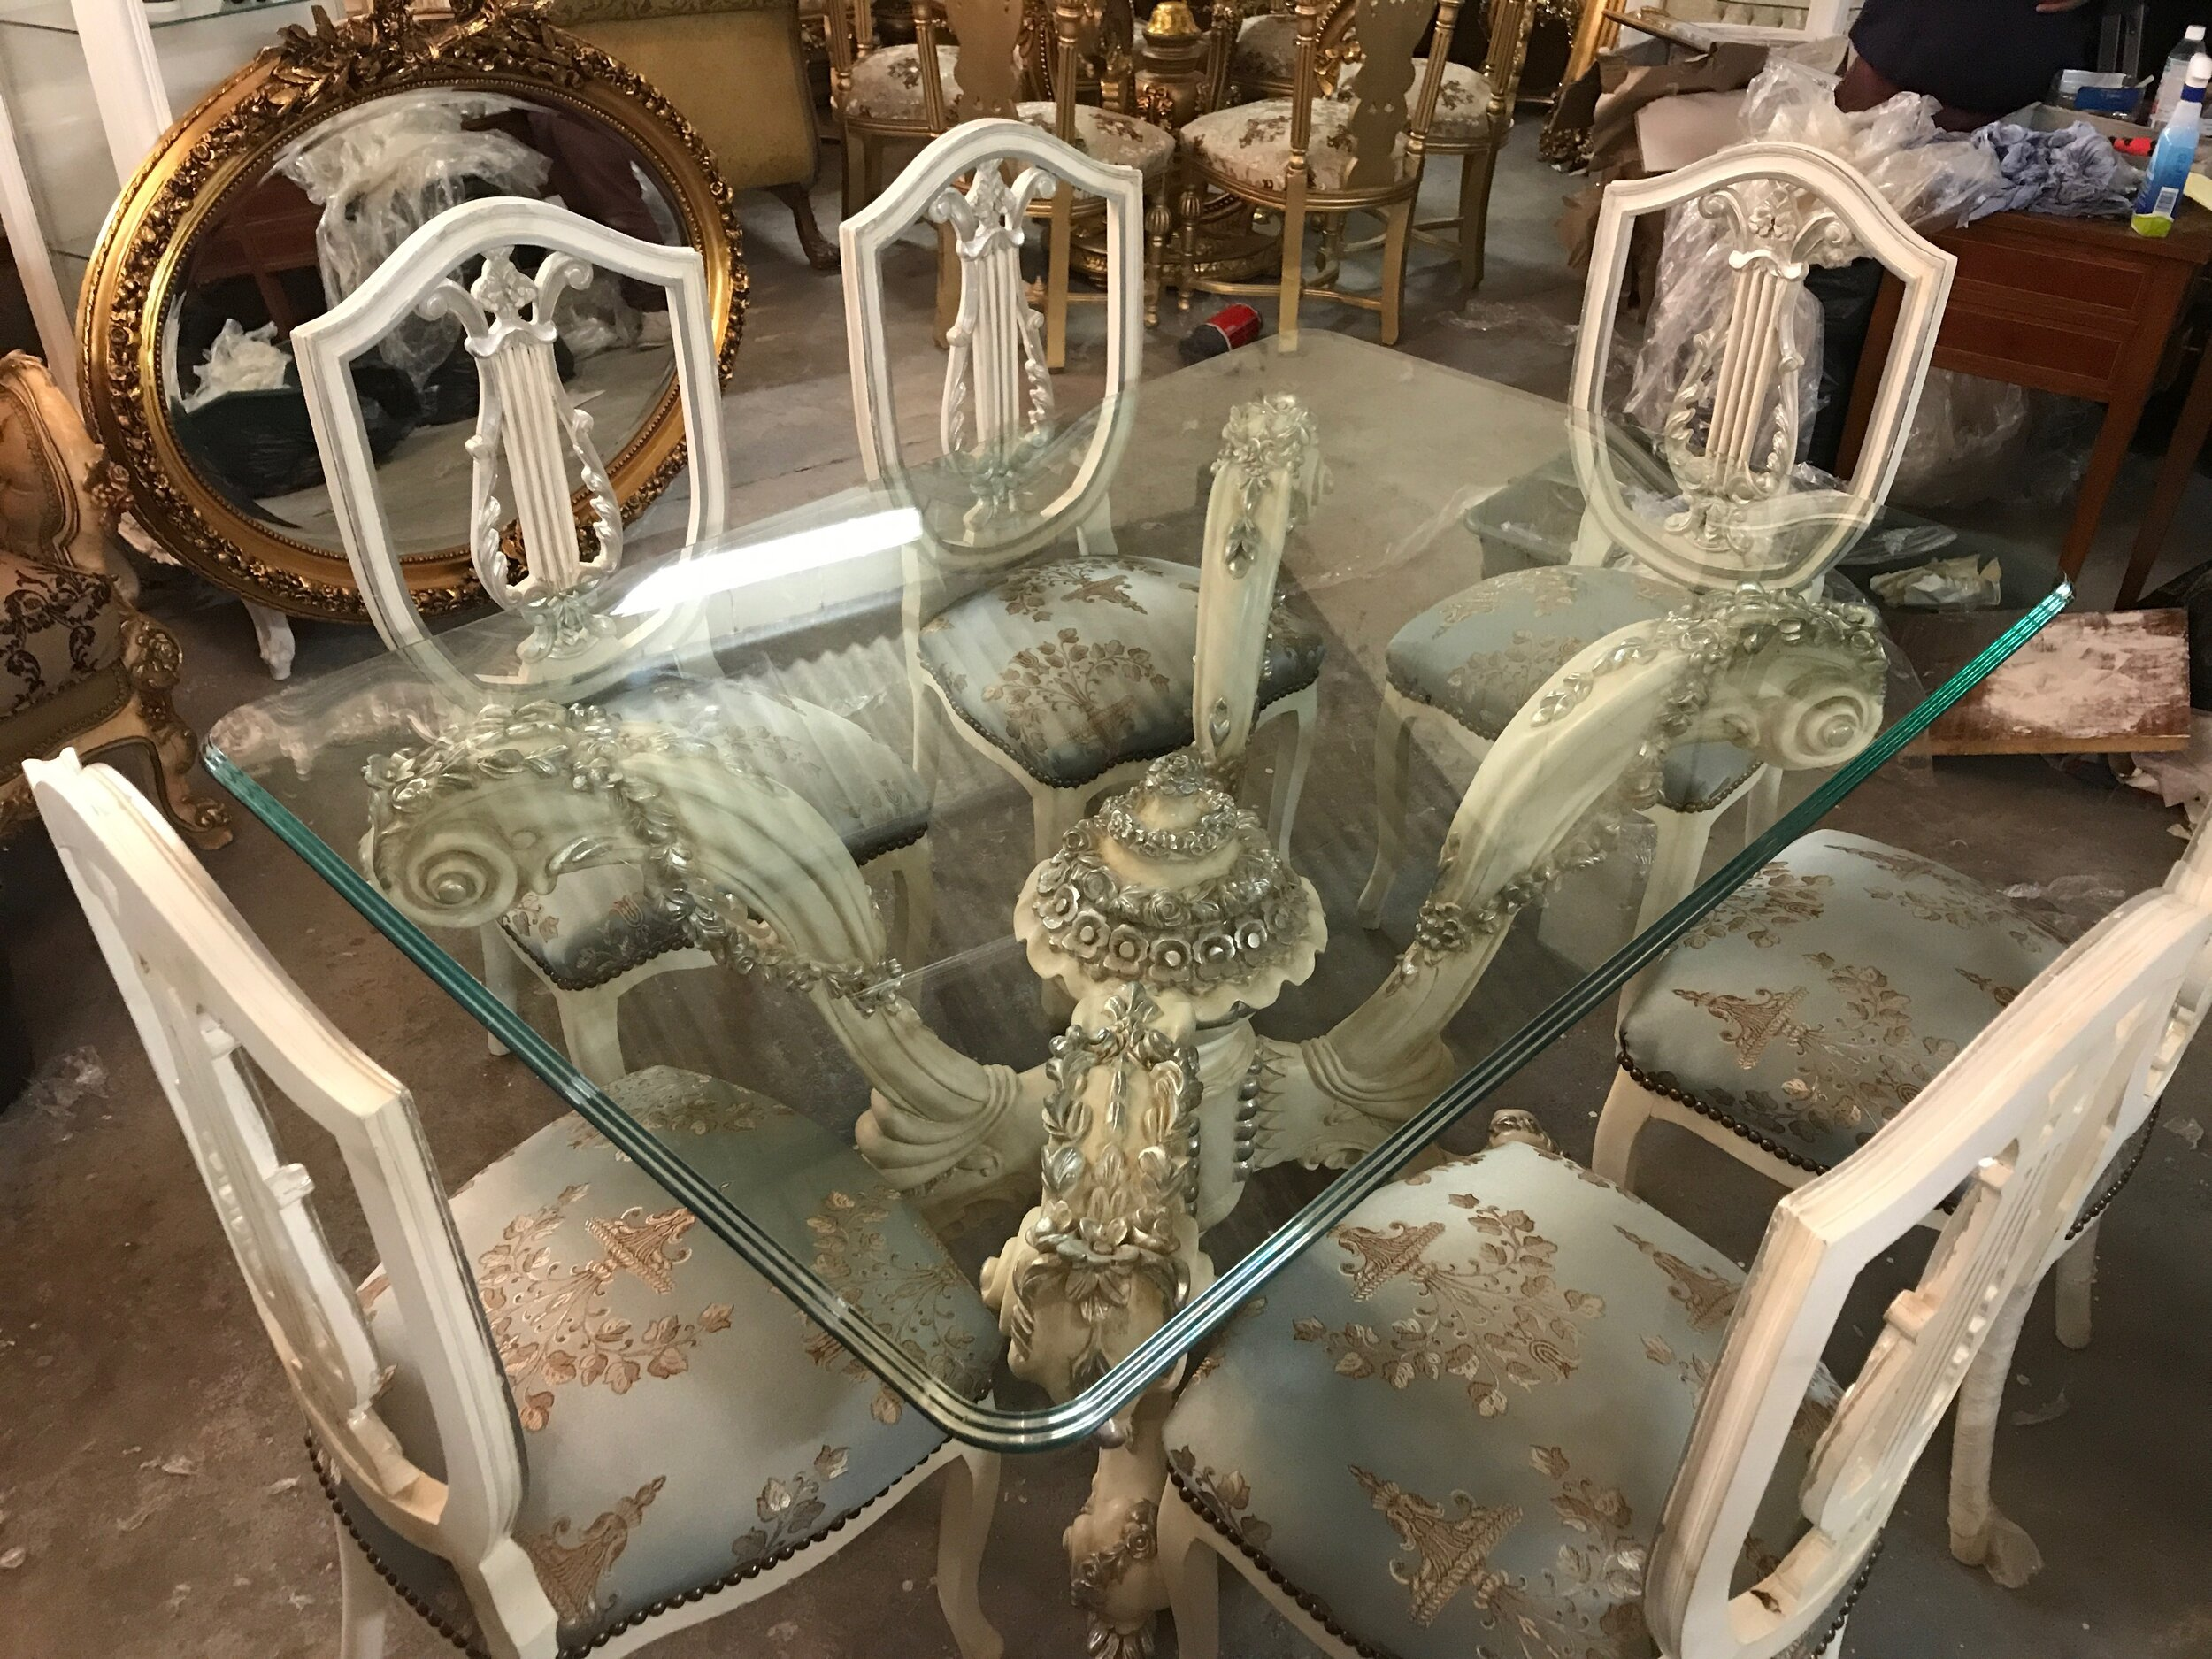 Silver and cream table and chairs